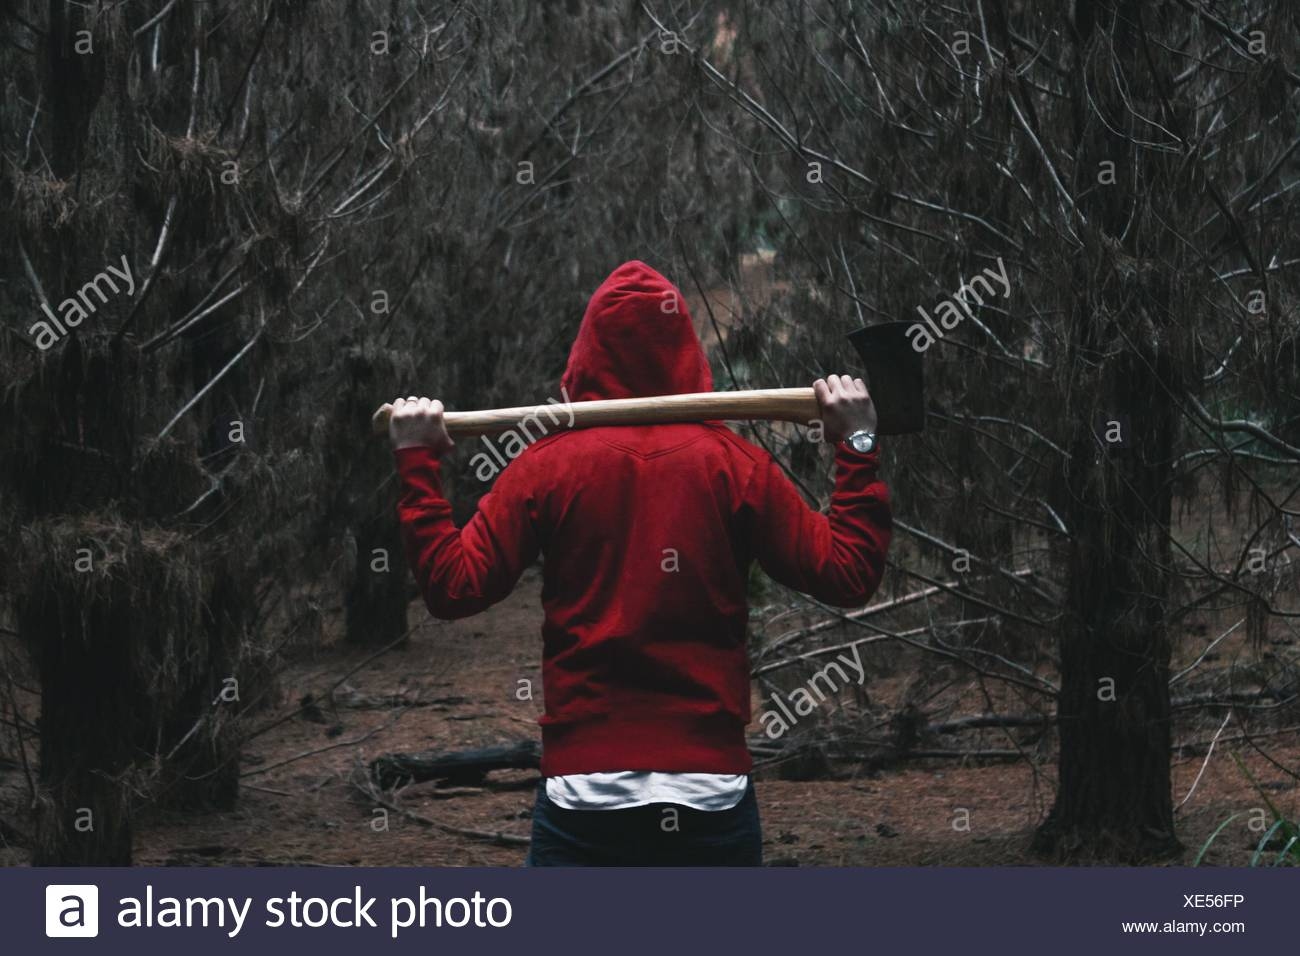 Rear View Of Person In Hooded Shirt Walking In Belanglo State Forest - Stock Image